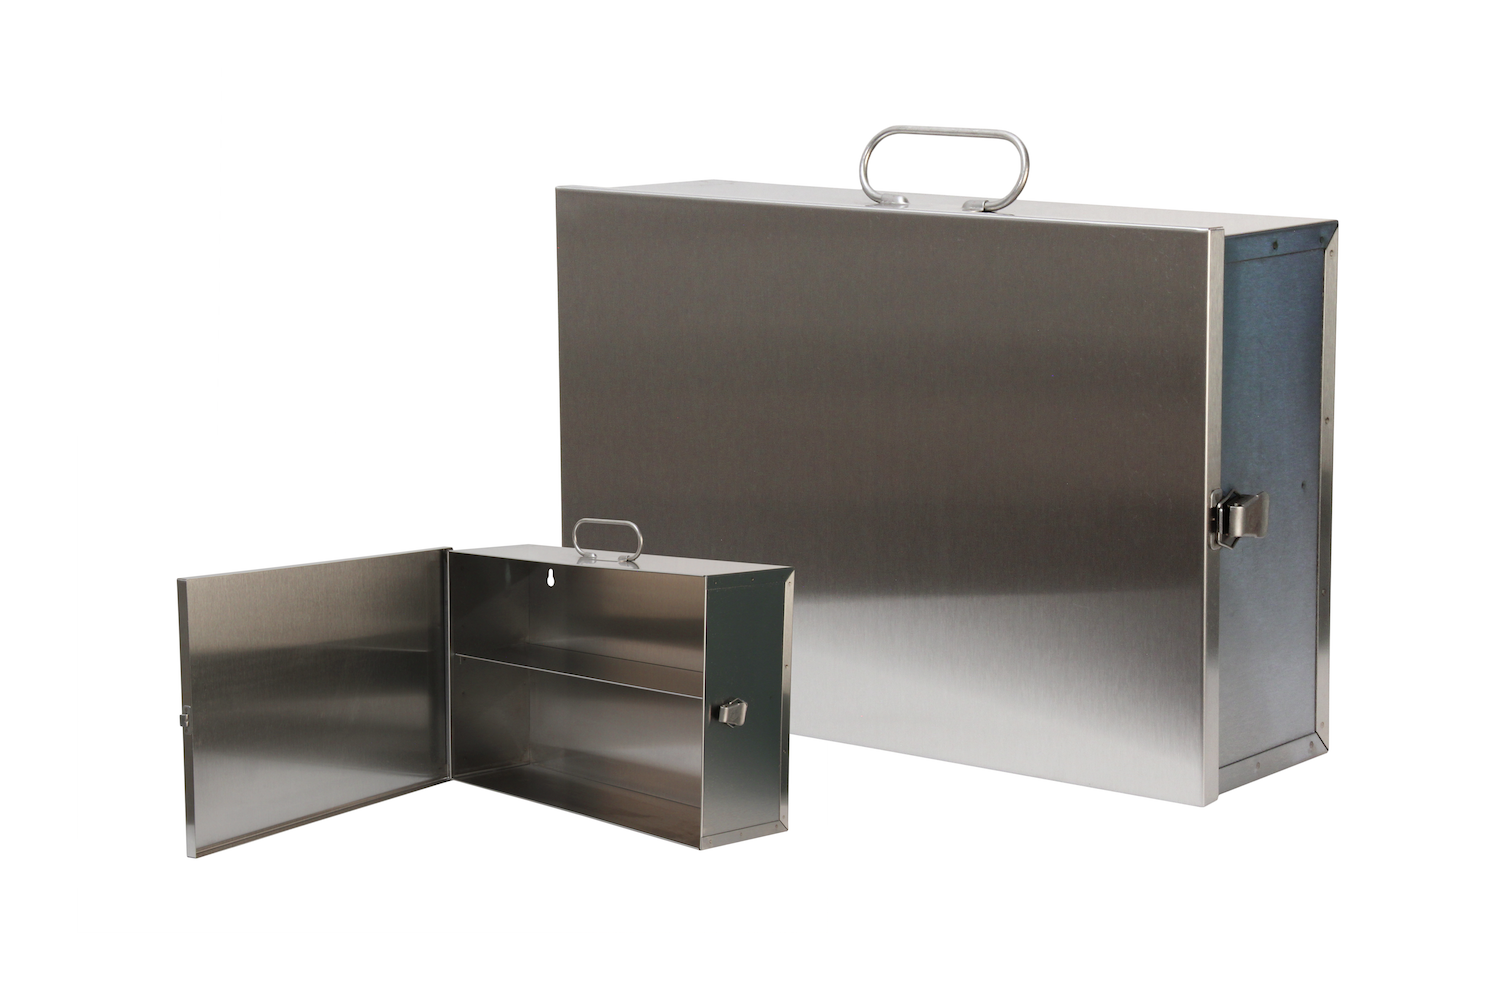 """#126 Unit First Aid Cabinet / Stainless (2 Shelf) Hinge on Left / Swing-out Door   Inside dimensions 14 7/8 x 10 x 4 5/8"""" Top shelf spacing 4 1/2"""" 22 ga stainless steel / individual weight 8 lbs Individual carton Max QTY per 40 x 48"""" pallet—108"""